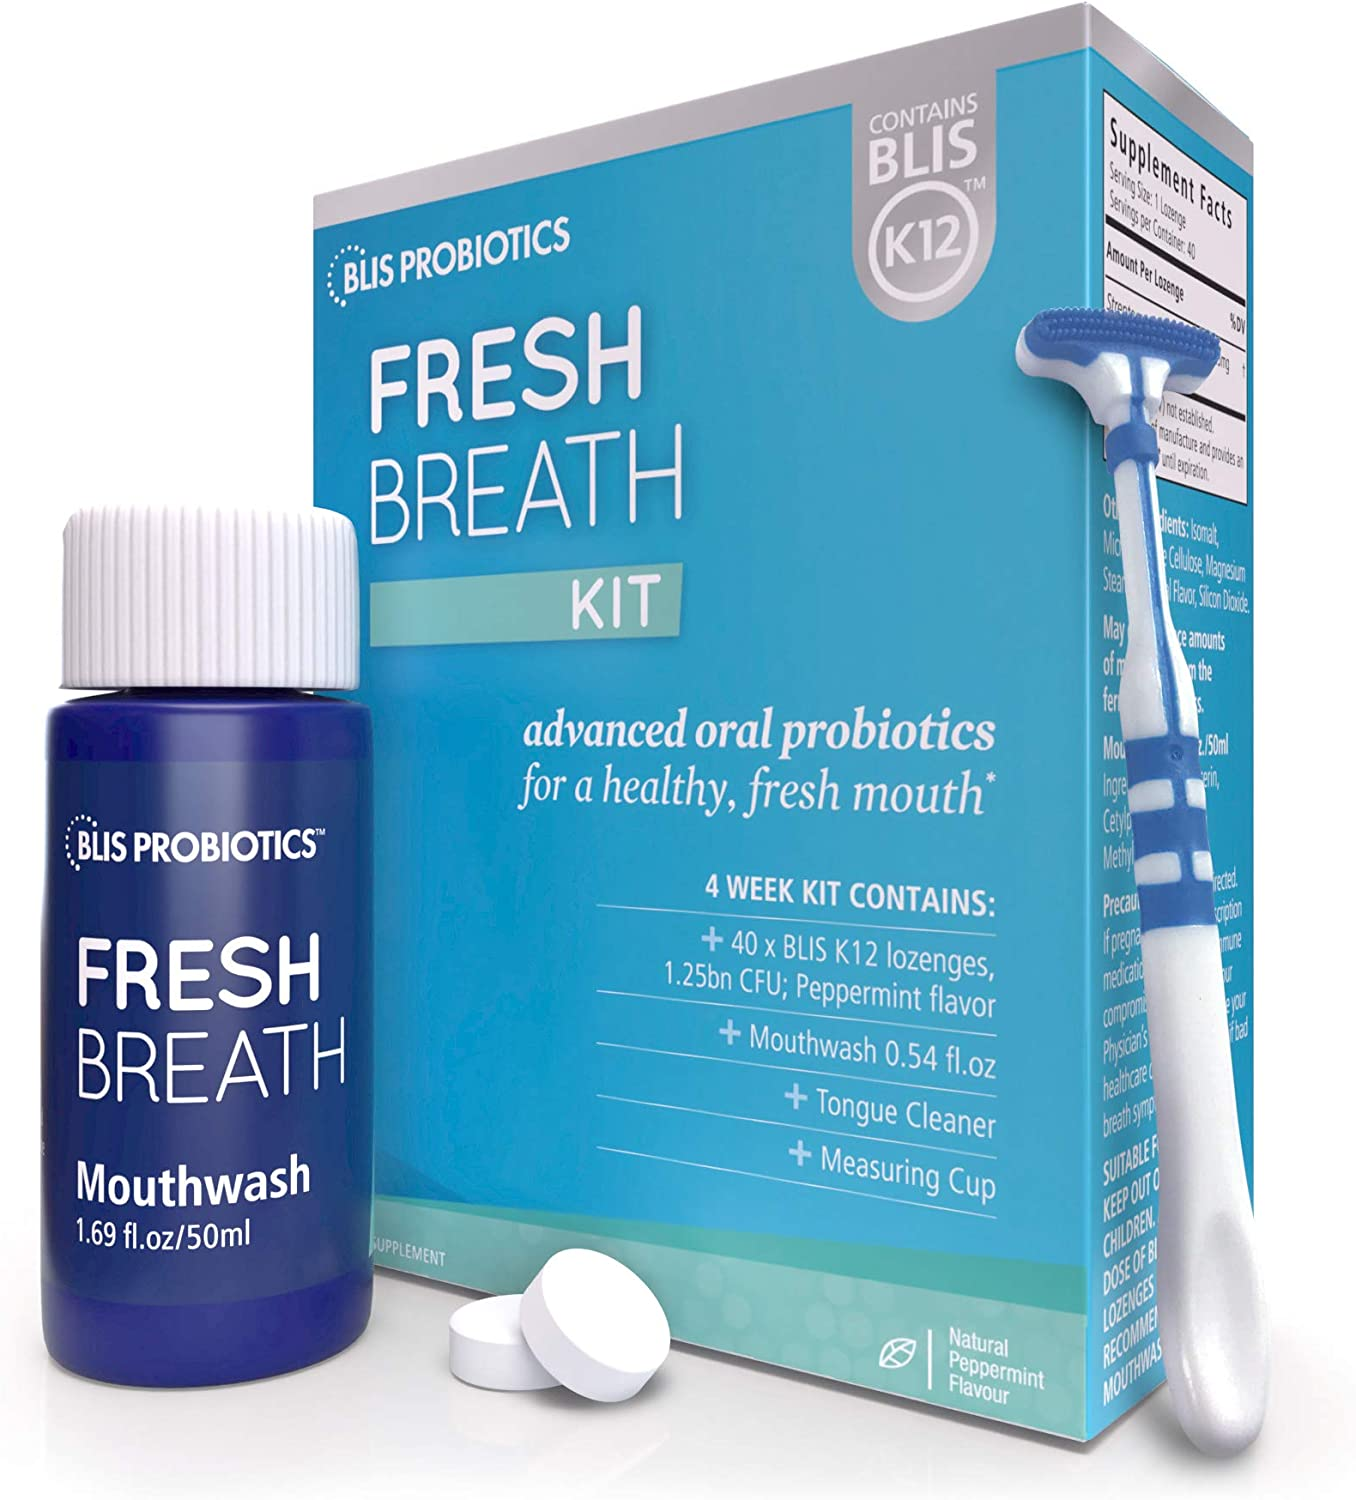 BLIS Fresh Breath Kit with Max 88% OFF K12 Probiotics Potent Cli Oral Super beauty product restock quality top!